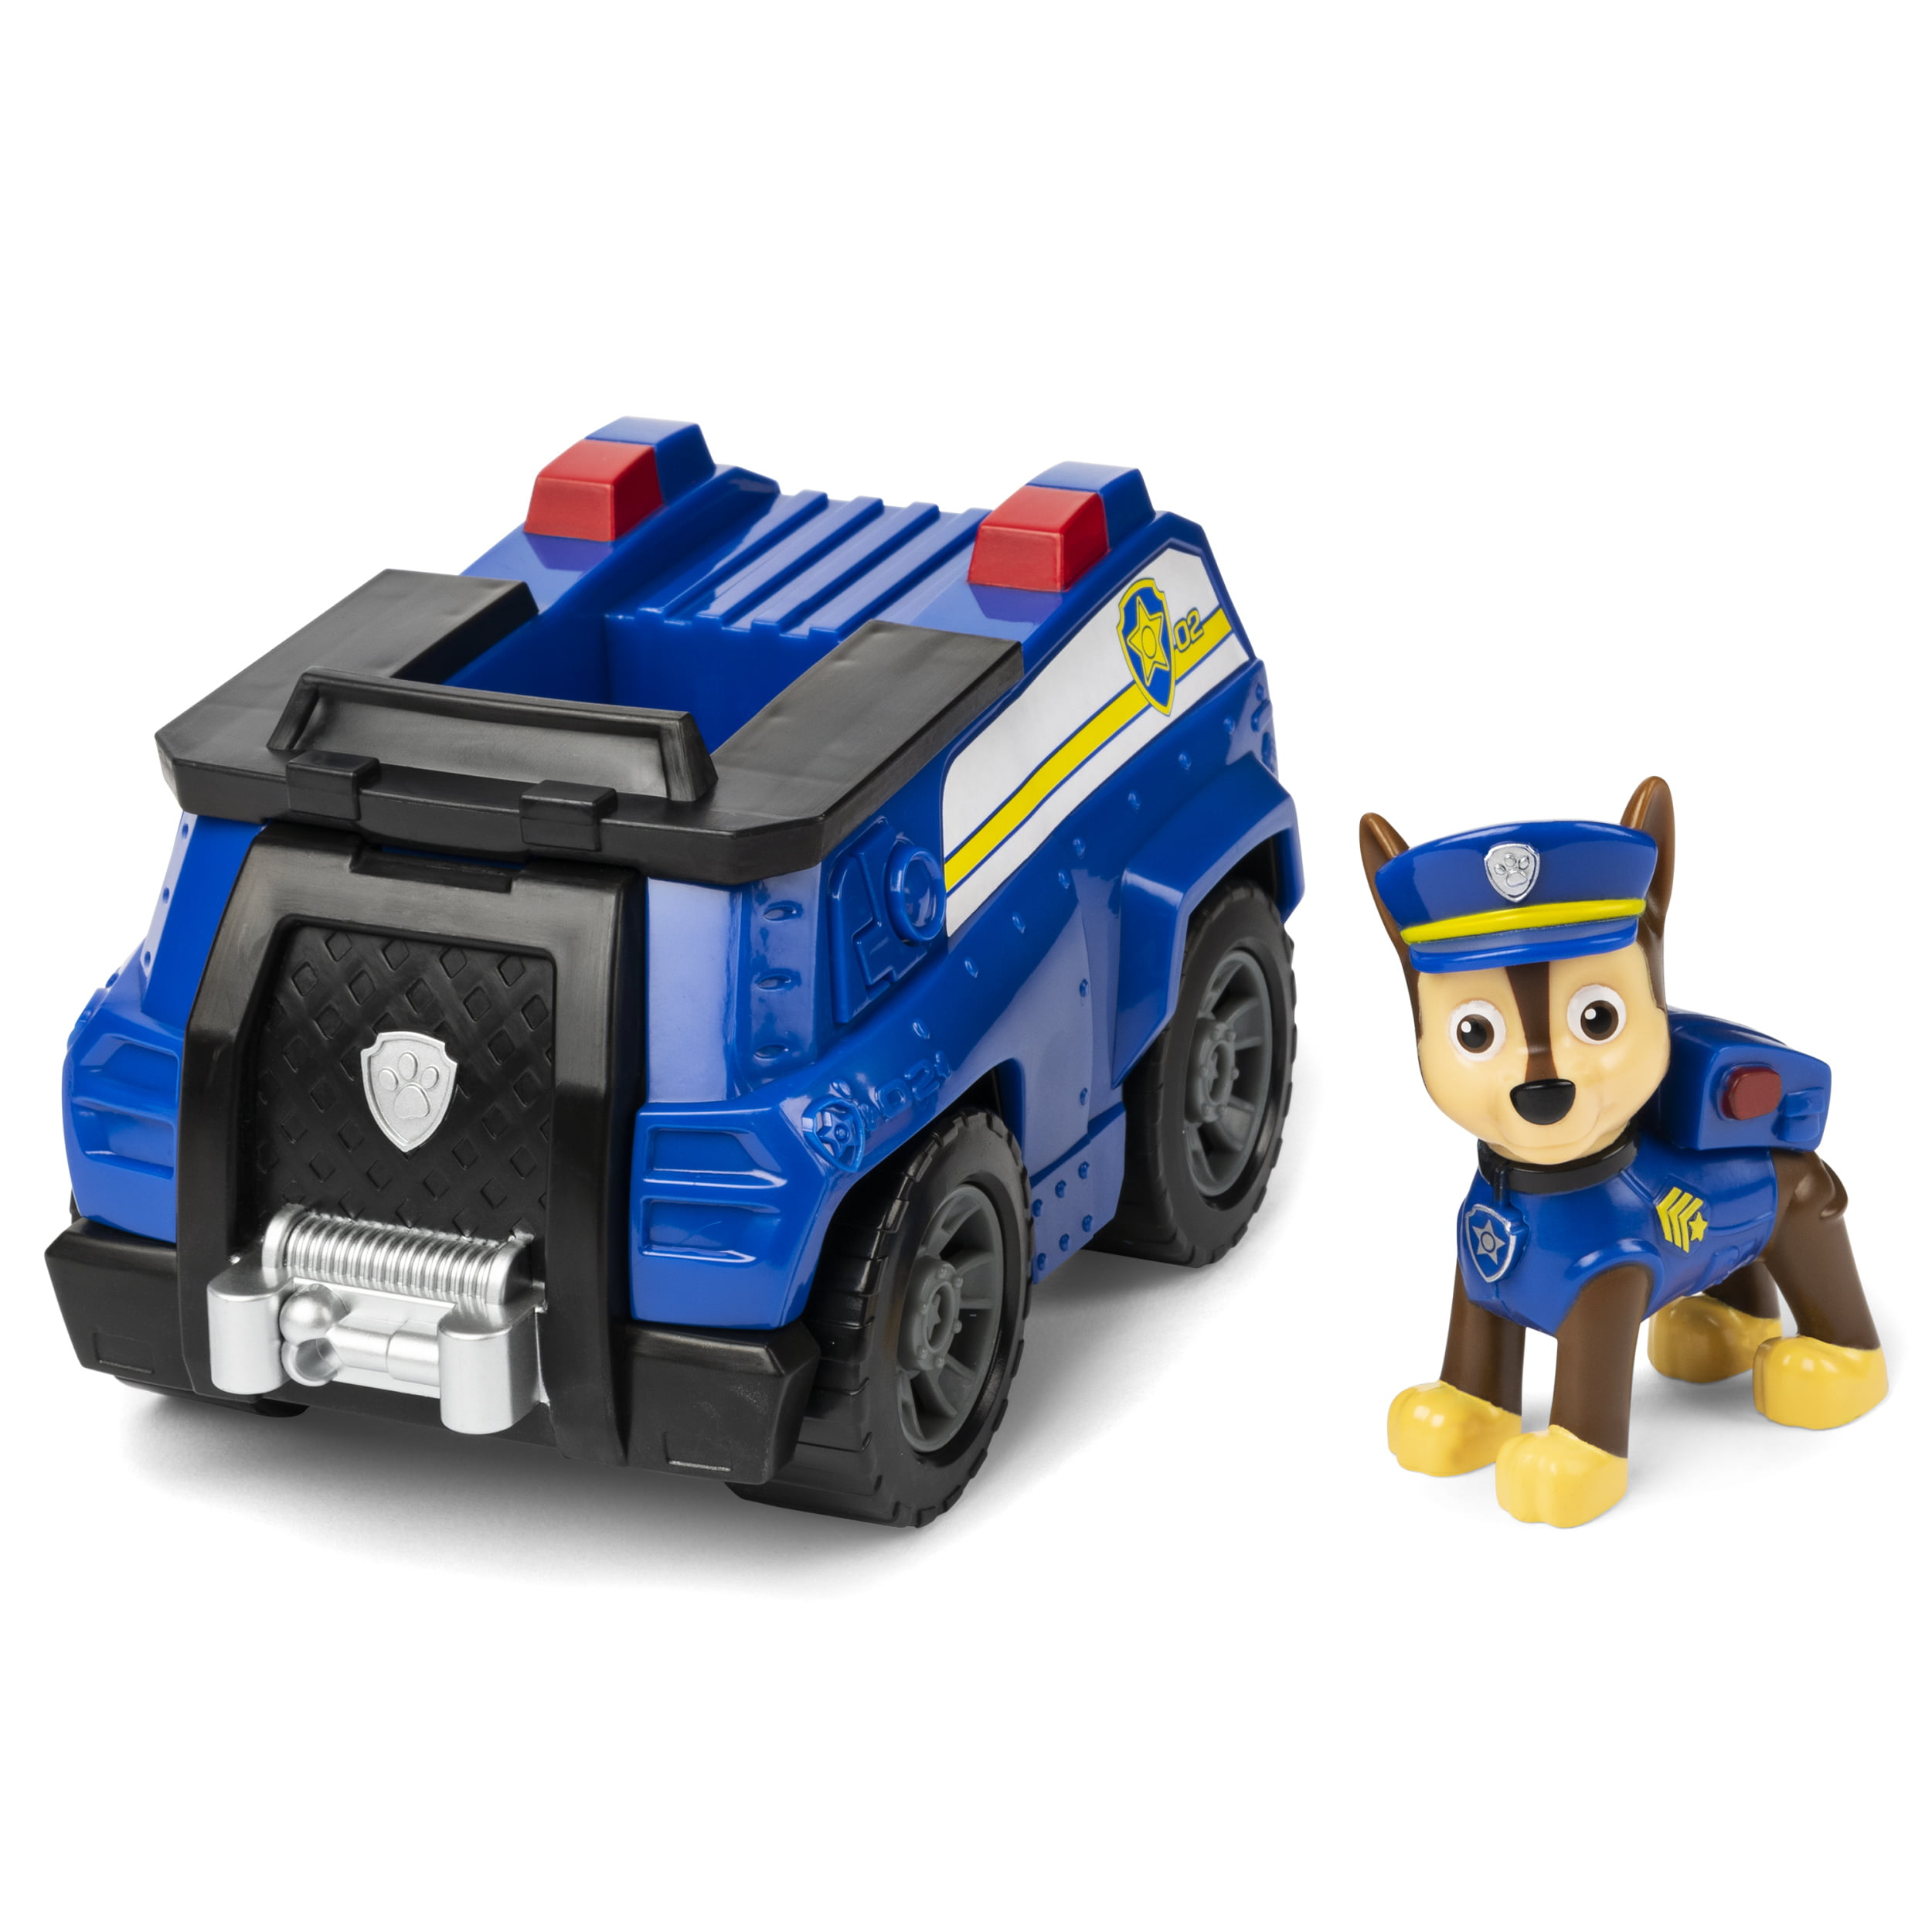 PAW Patrol, Chase's Patrol Cruiser Vehicle with Collectible Figure, for Kids Aged 3 and Up